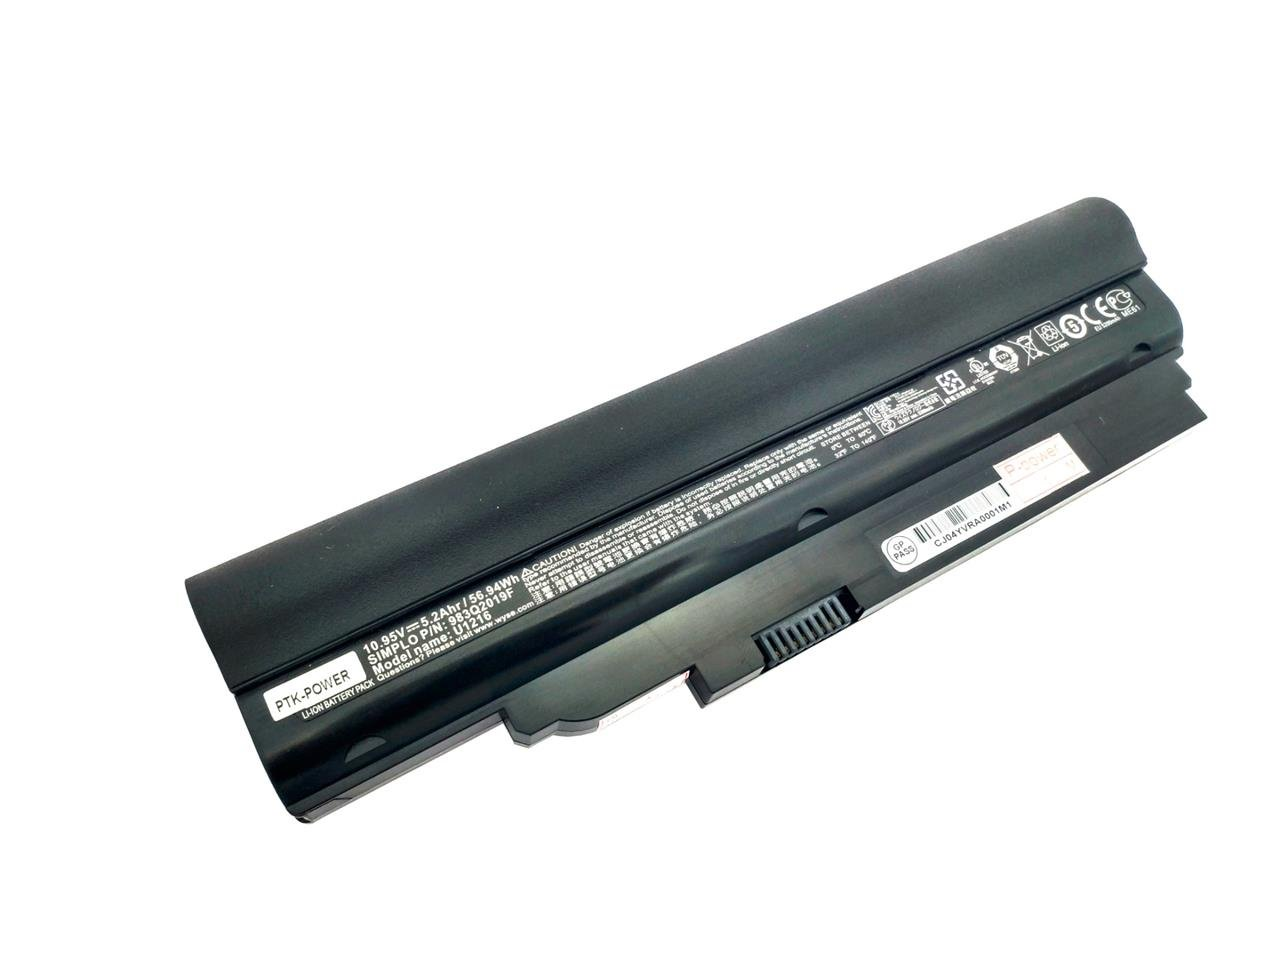 PTK-POWER 10.95V 56.94Wh 5.2Ahr 983Q2019F U1216 Notebook Battery For BENQ U121 U122 Series Laptop batteries by PTK-Power (Image #1)